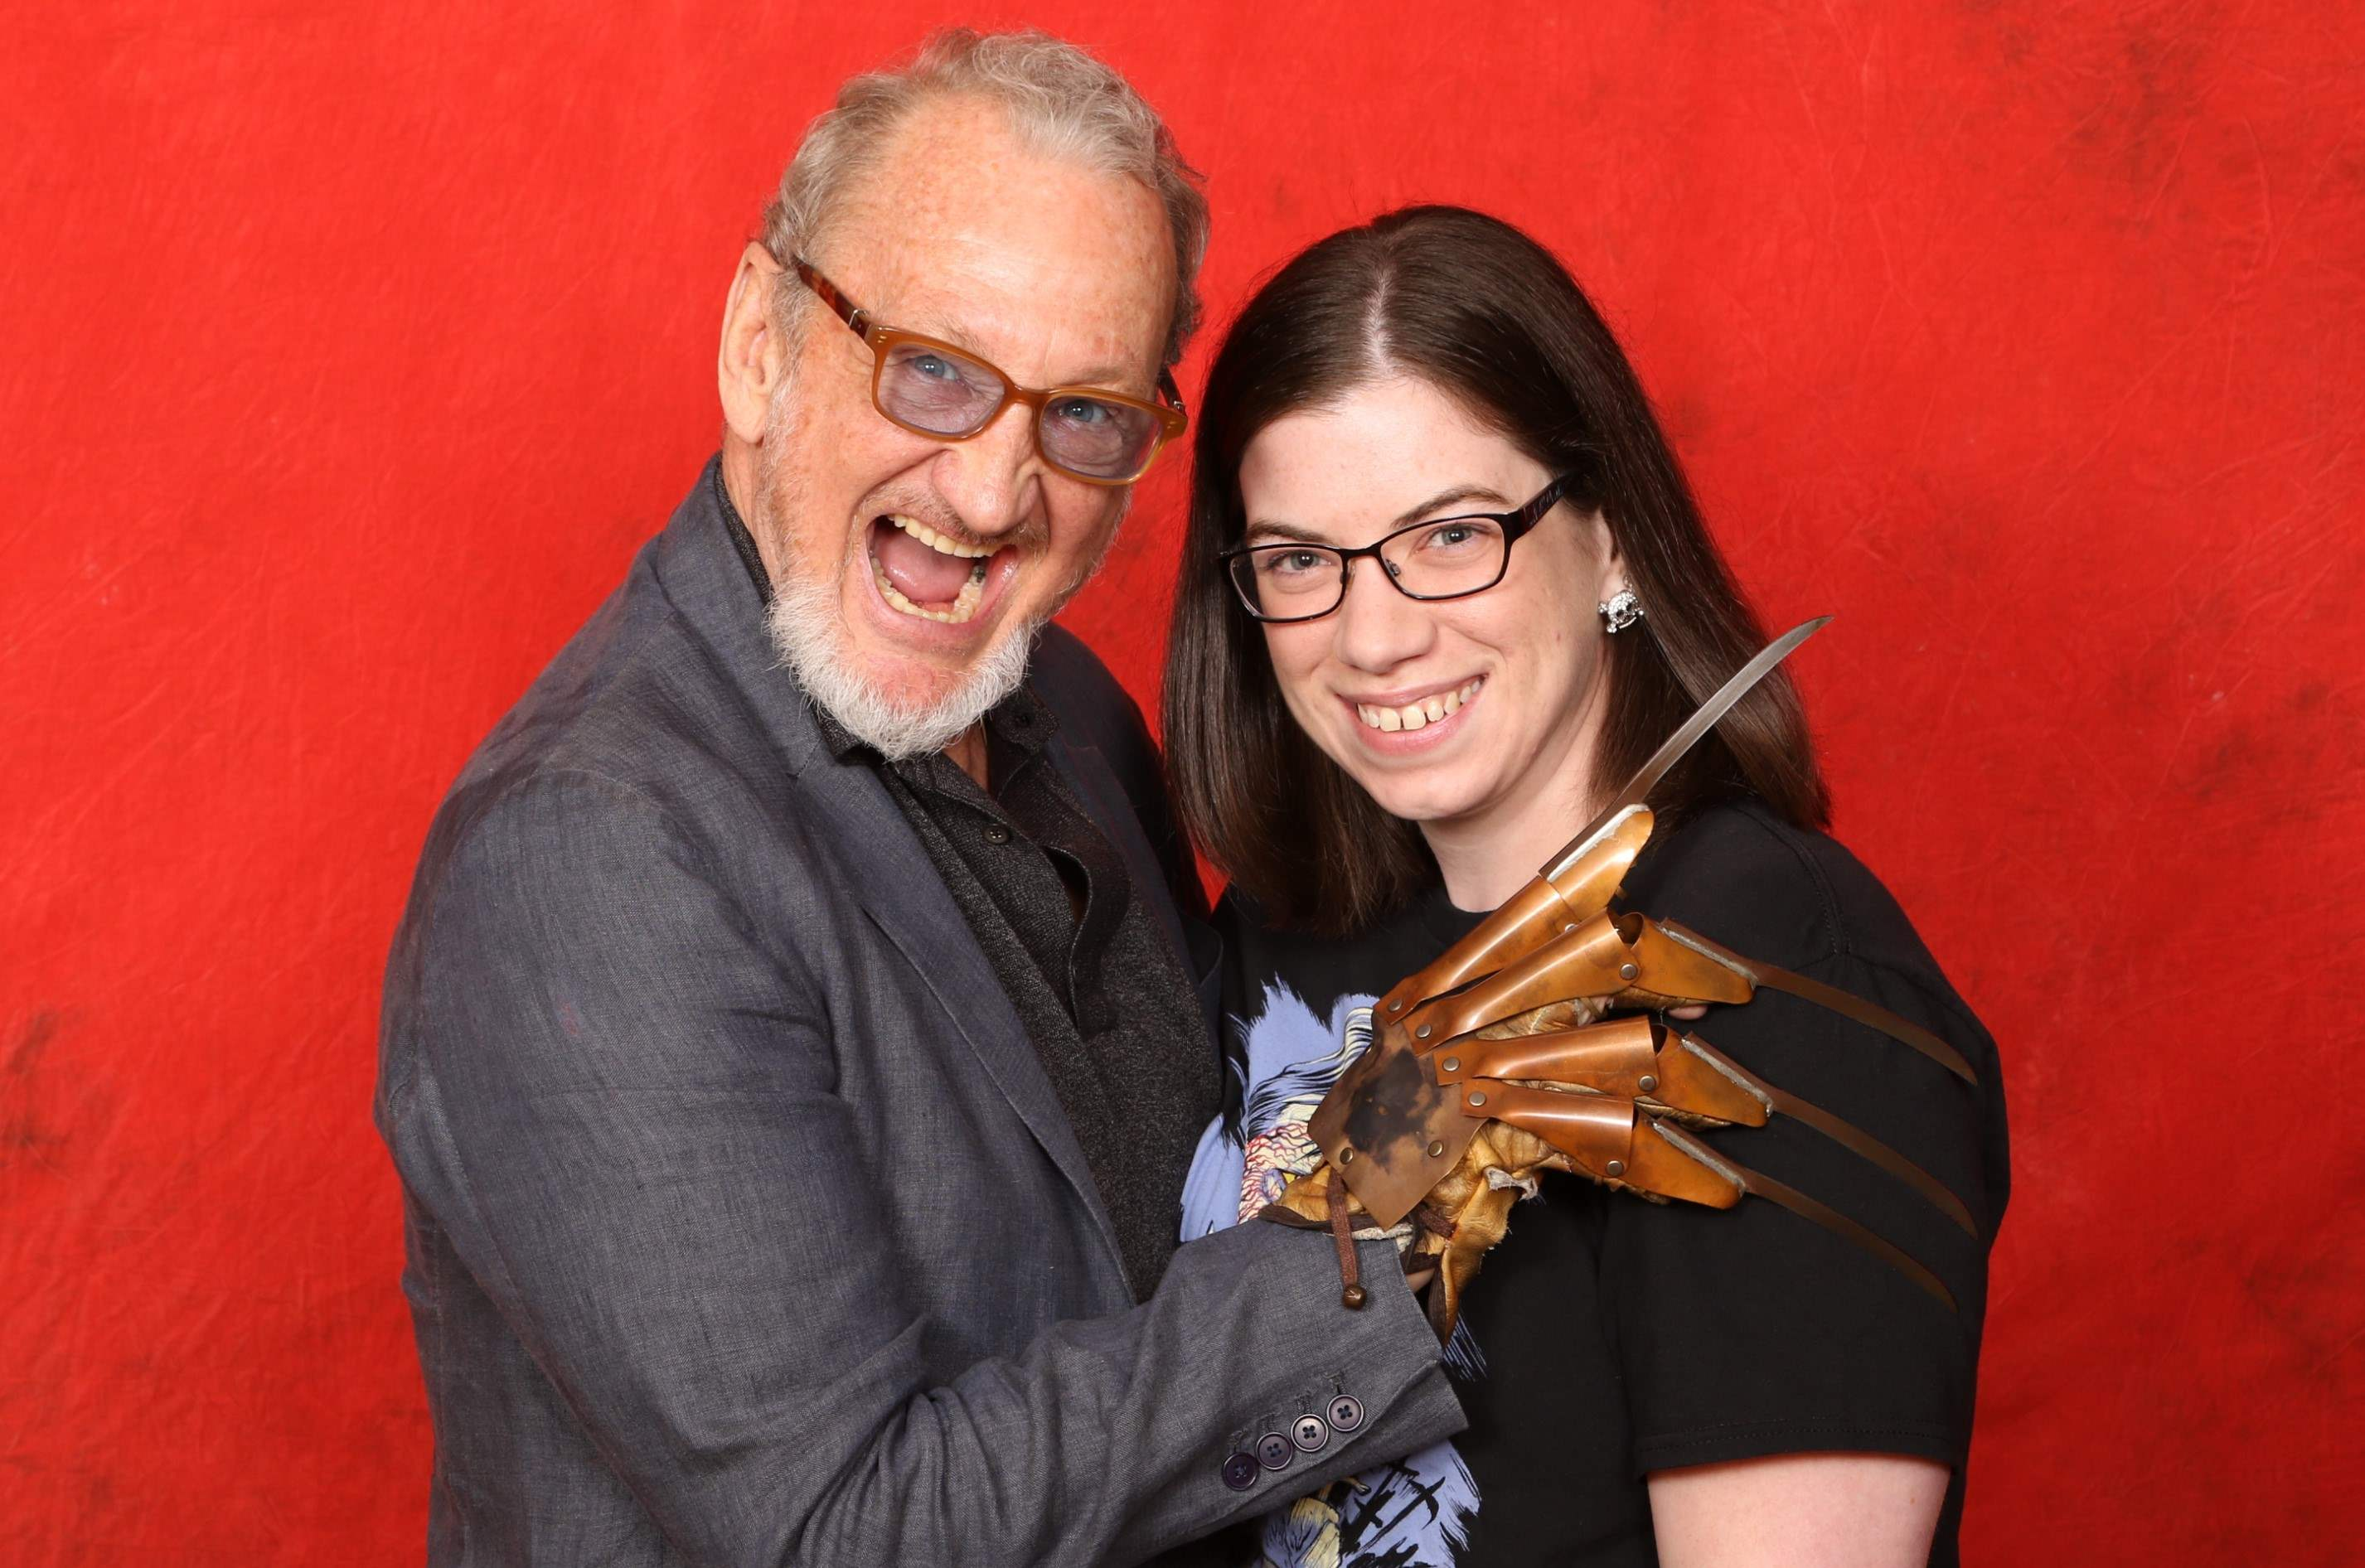 Michele's photo op with Robert Englund at Texas Frightmare Weekend 2016